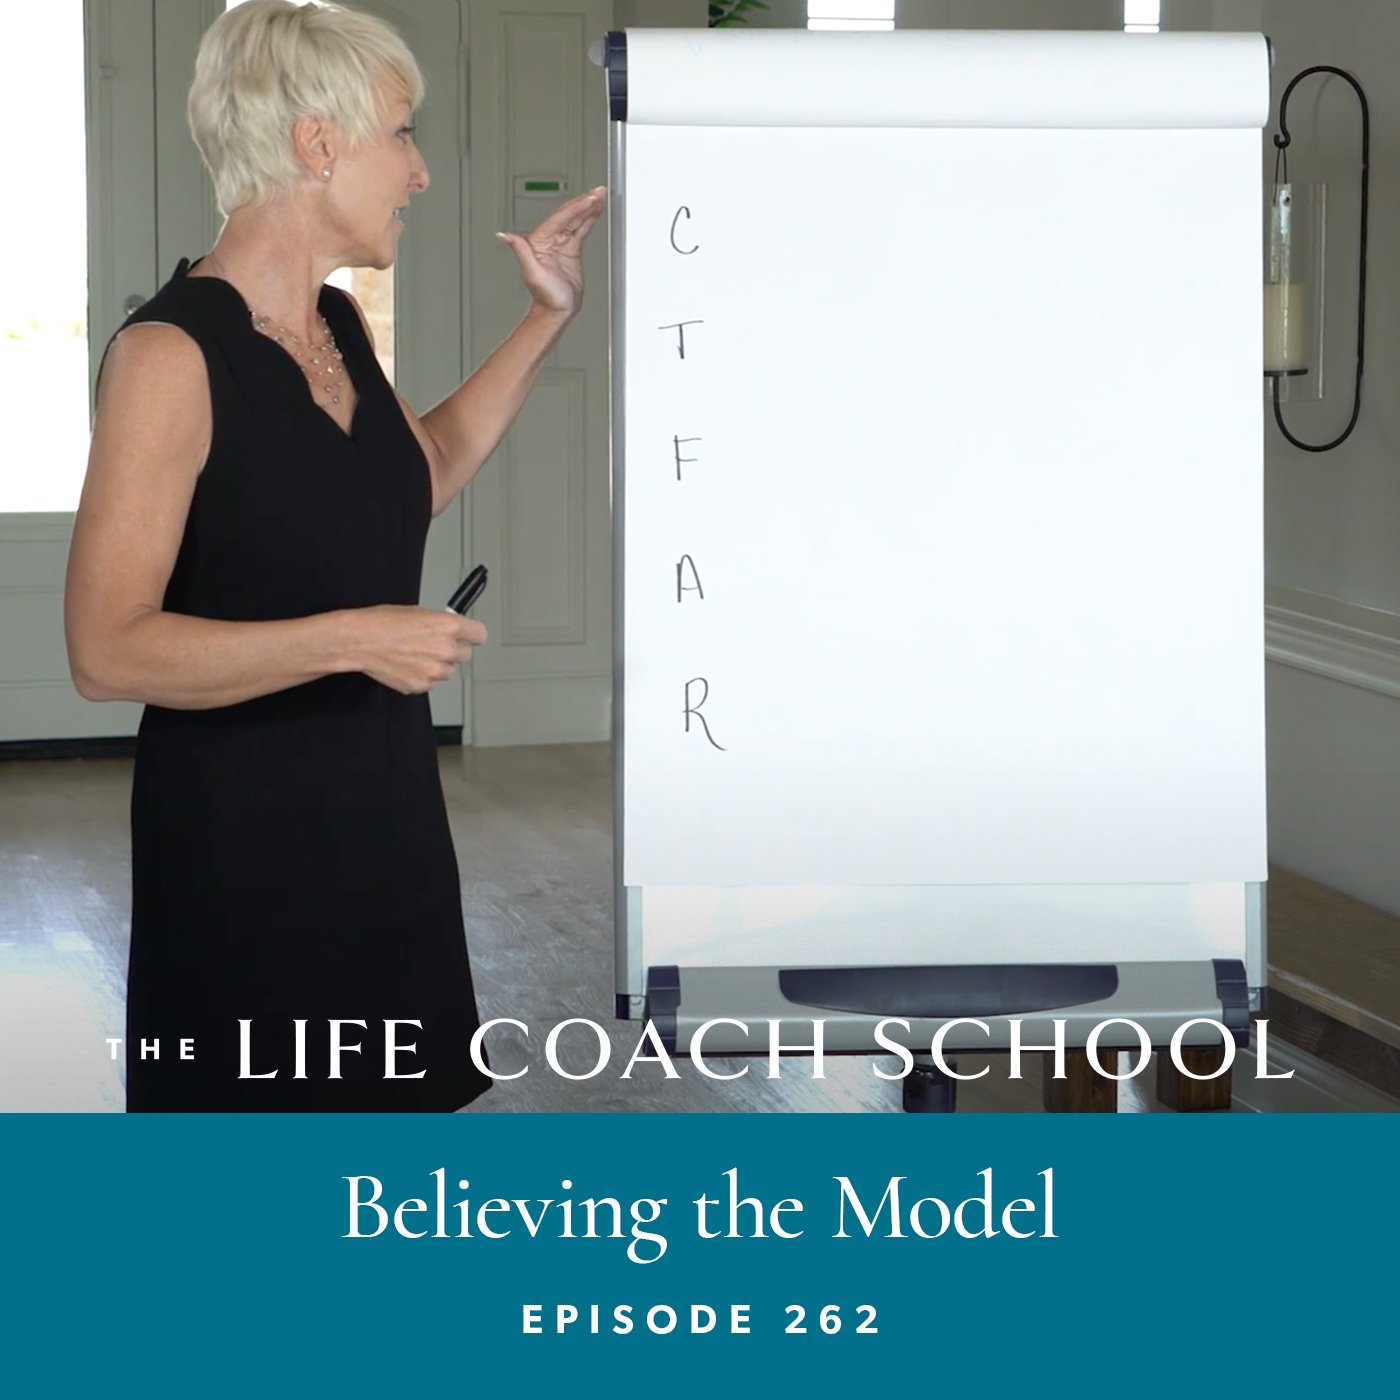 The Life Coach School Podcast with Brooke Castillo | Episode 262 | Believing the Model